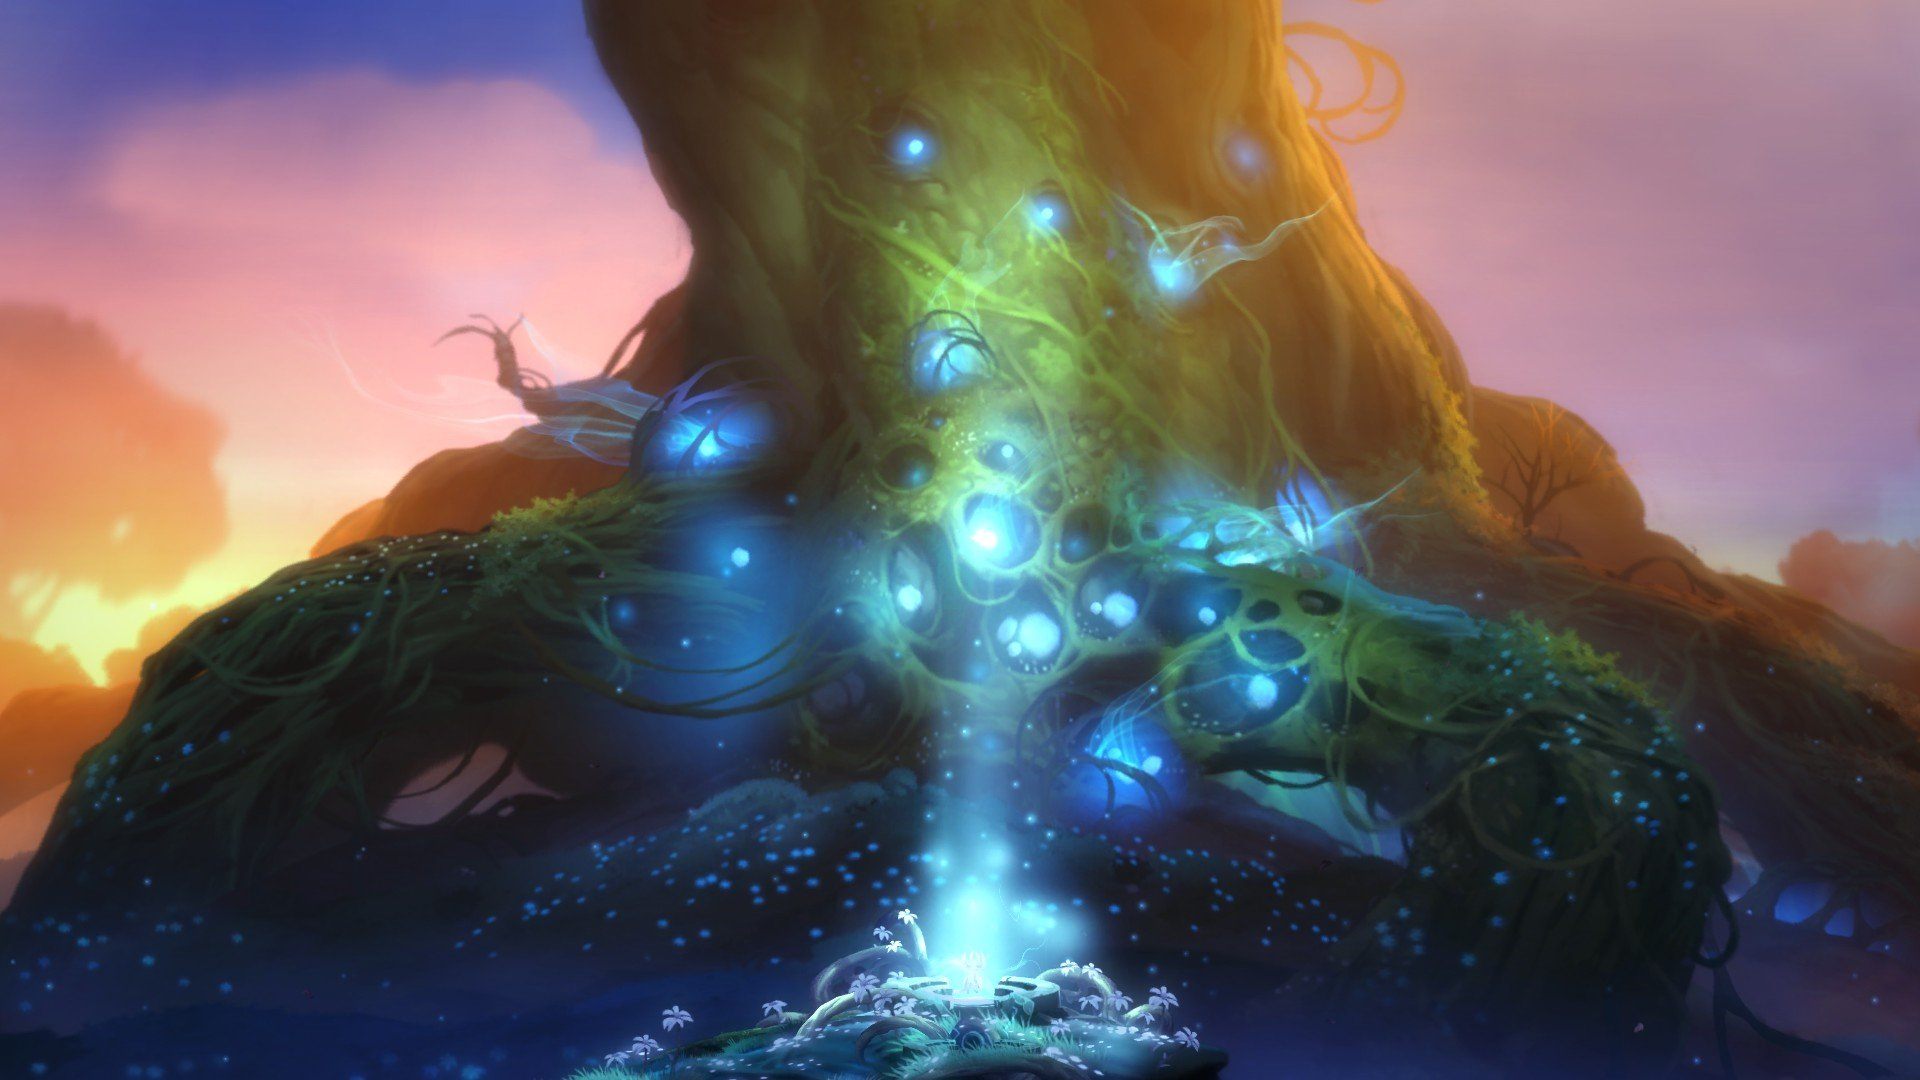 Artstation Ori And The Blind Forest Ingame Art Johannes Figlhuber